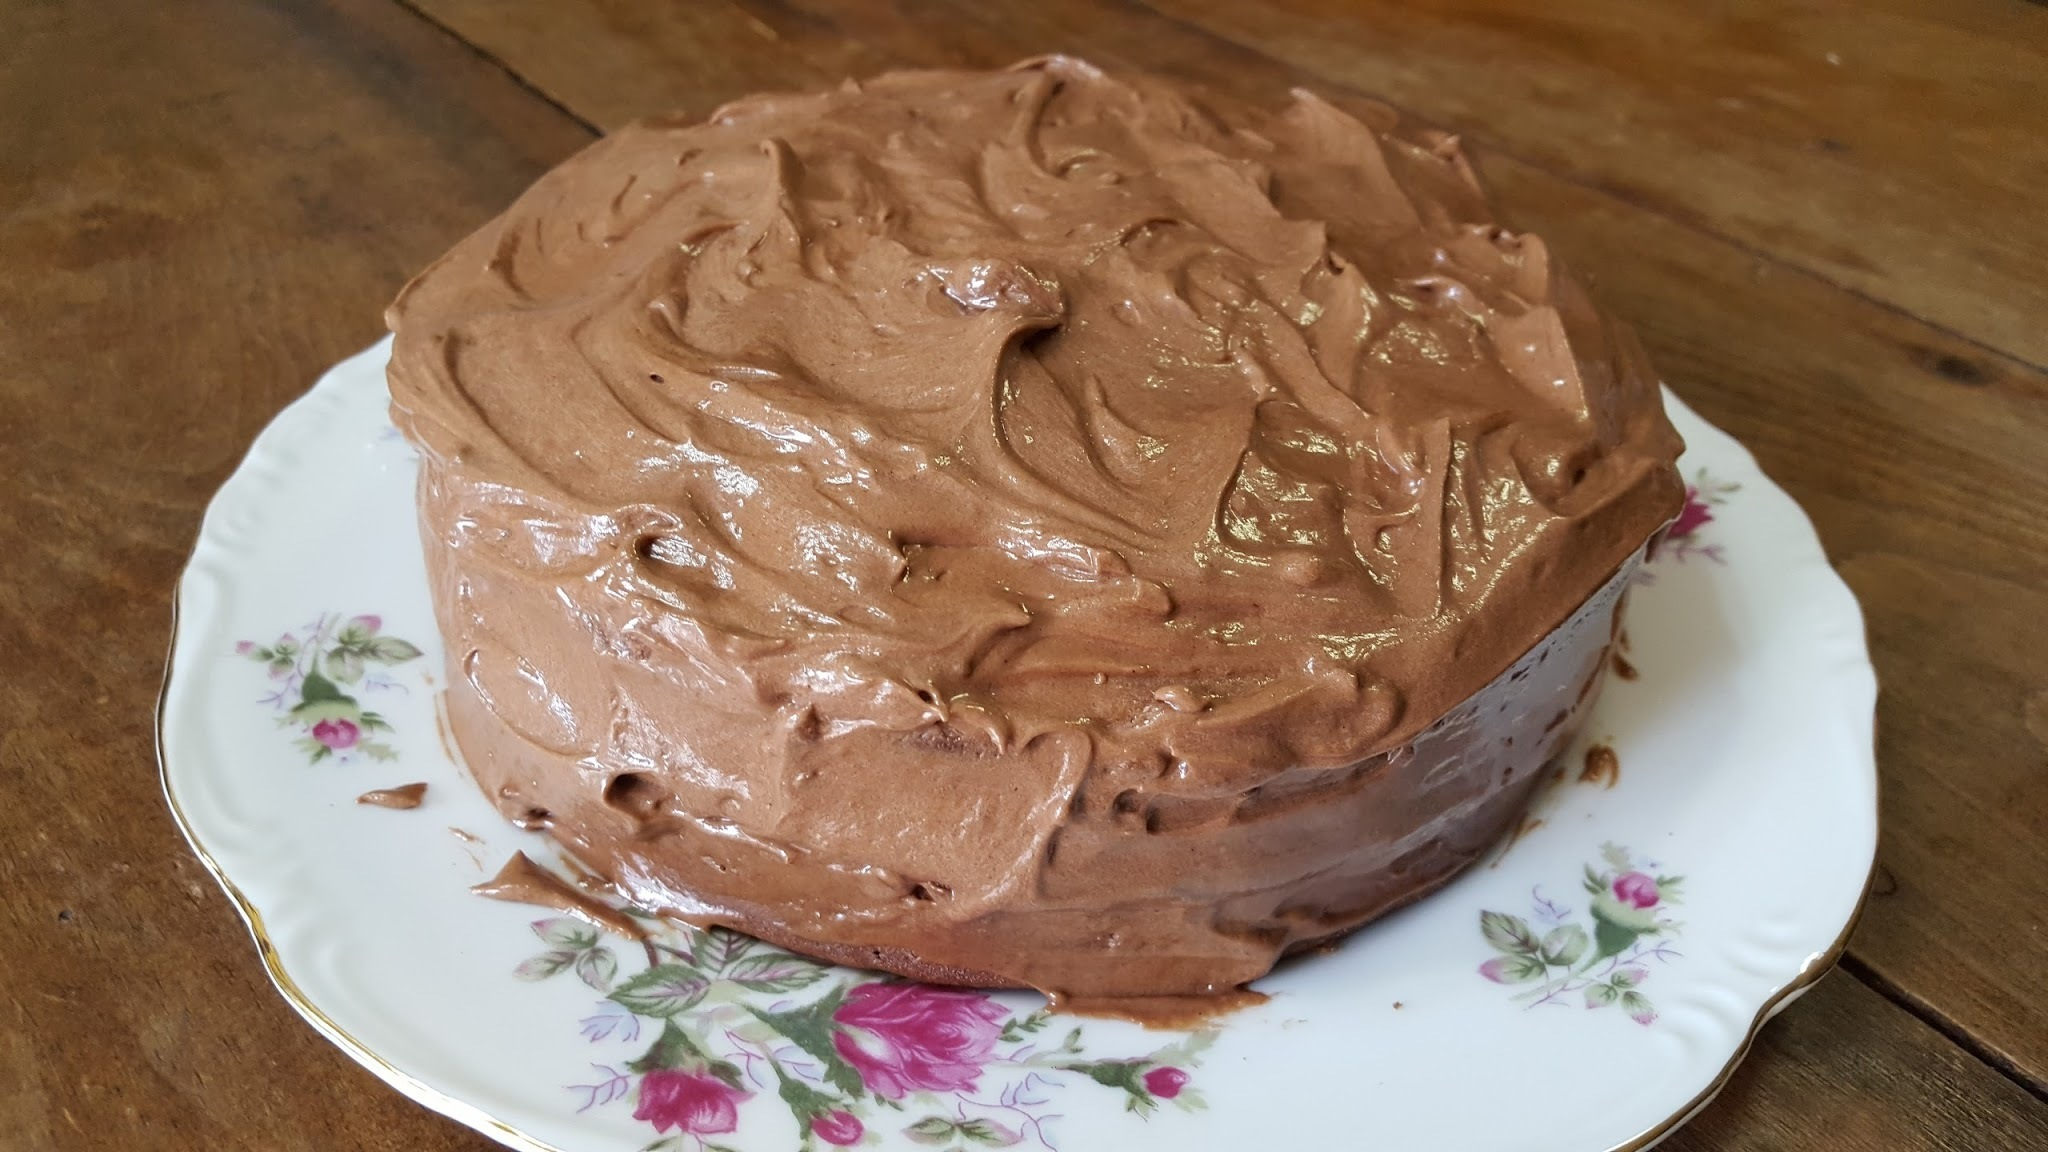 MIDNIGHT CAKE with CHOCOLATE PEANUT BUTTER FROSTING